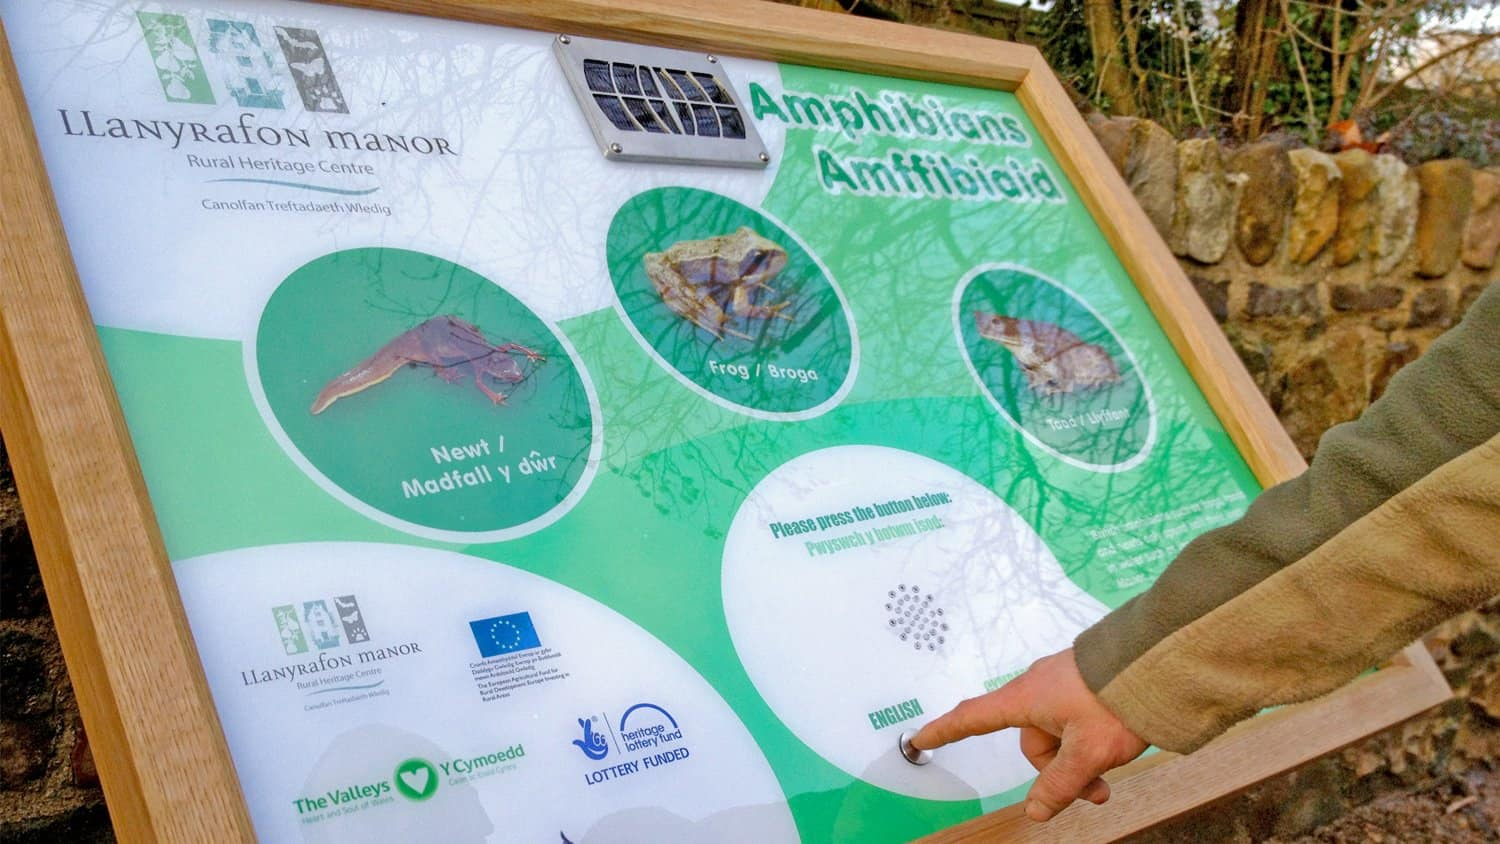 Amphibians Audio Sign Touch at Llanyrafon manor